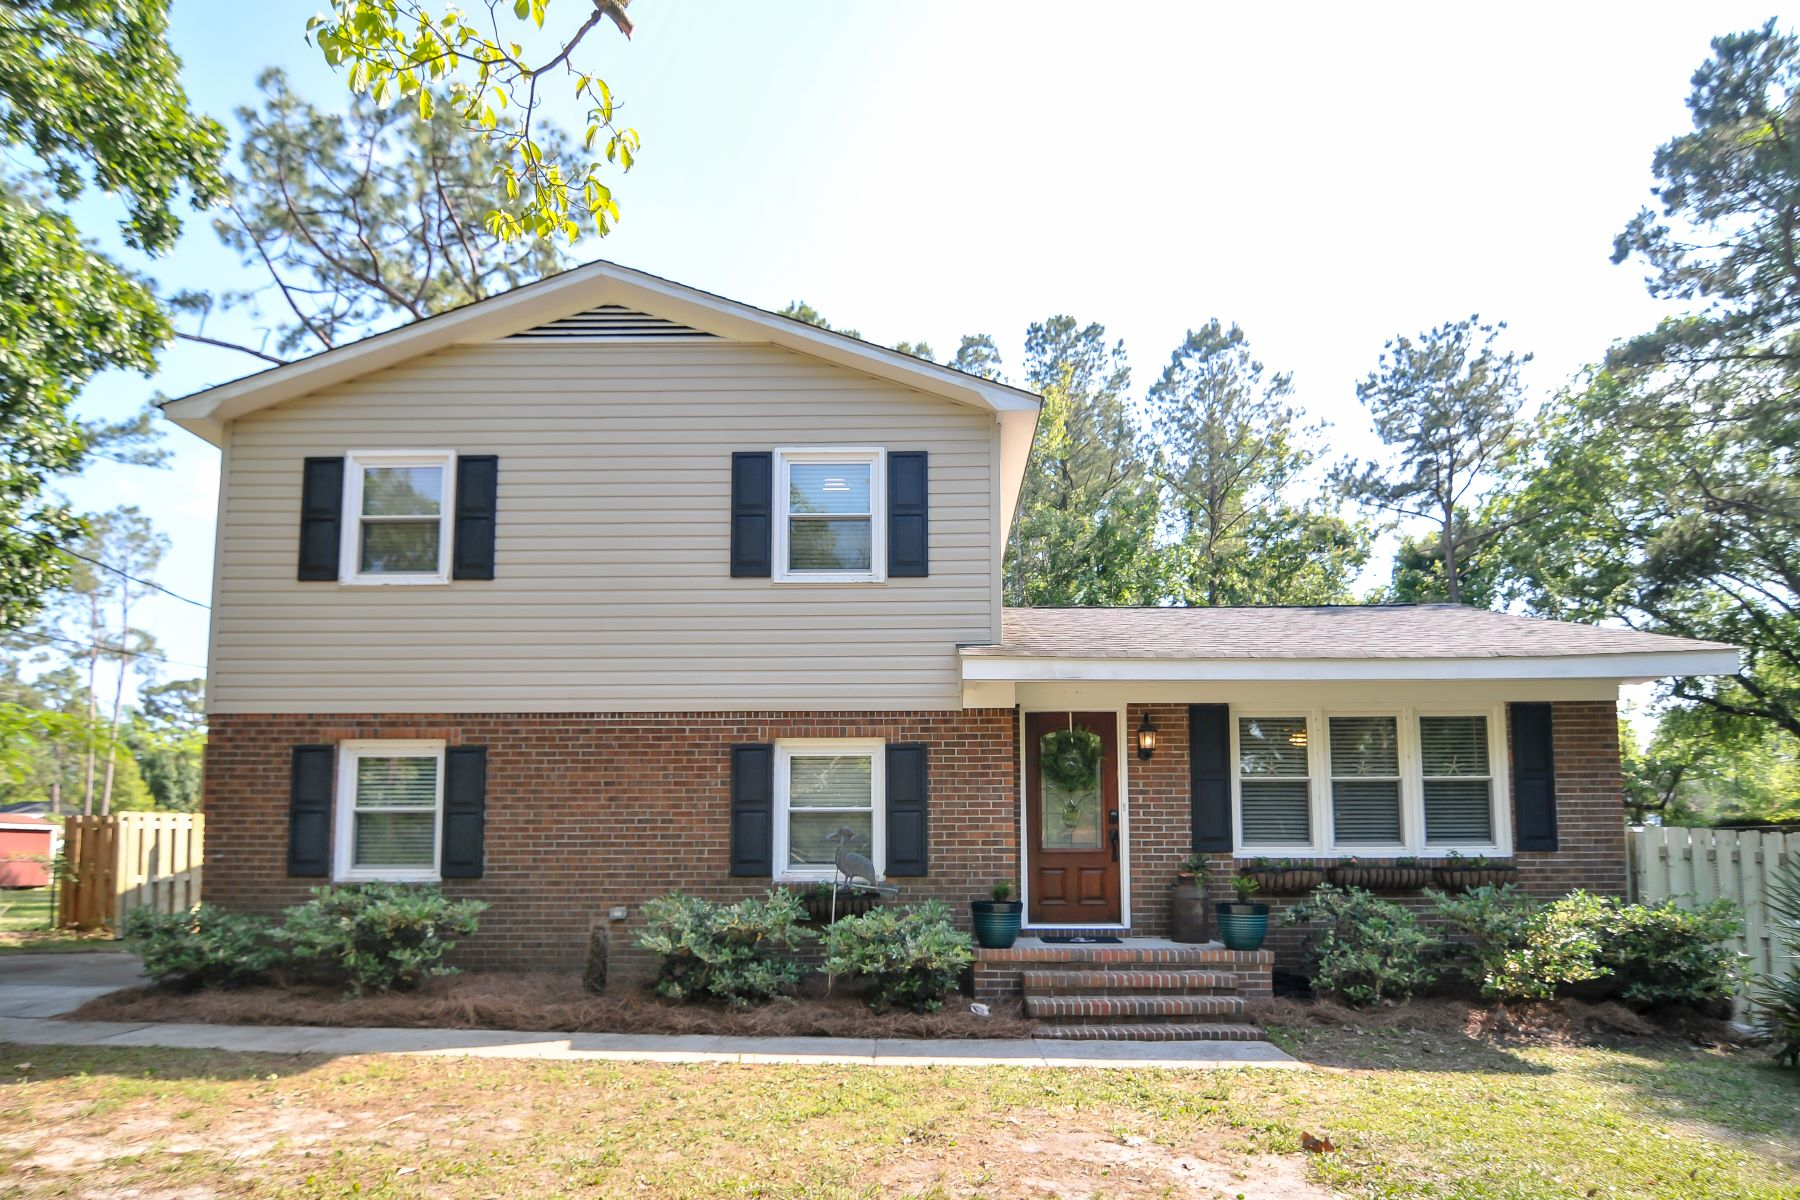 Single Family Homes for Sale at Peaceful Neighborhood and Unique Touches 31 Twin Oaks Drive Castle Hayne, North Carolina 28429 United States